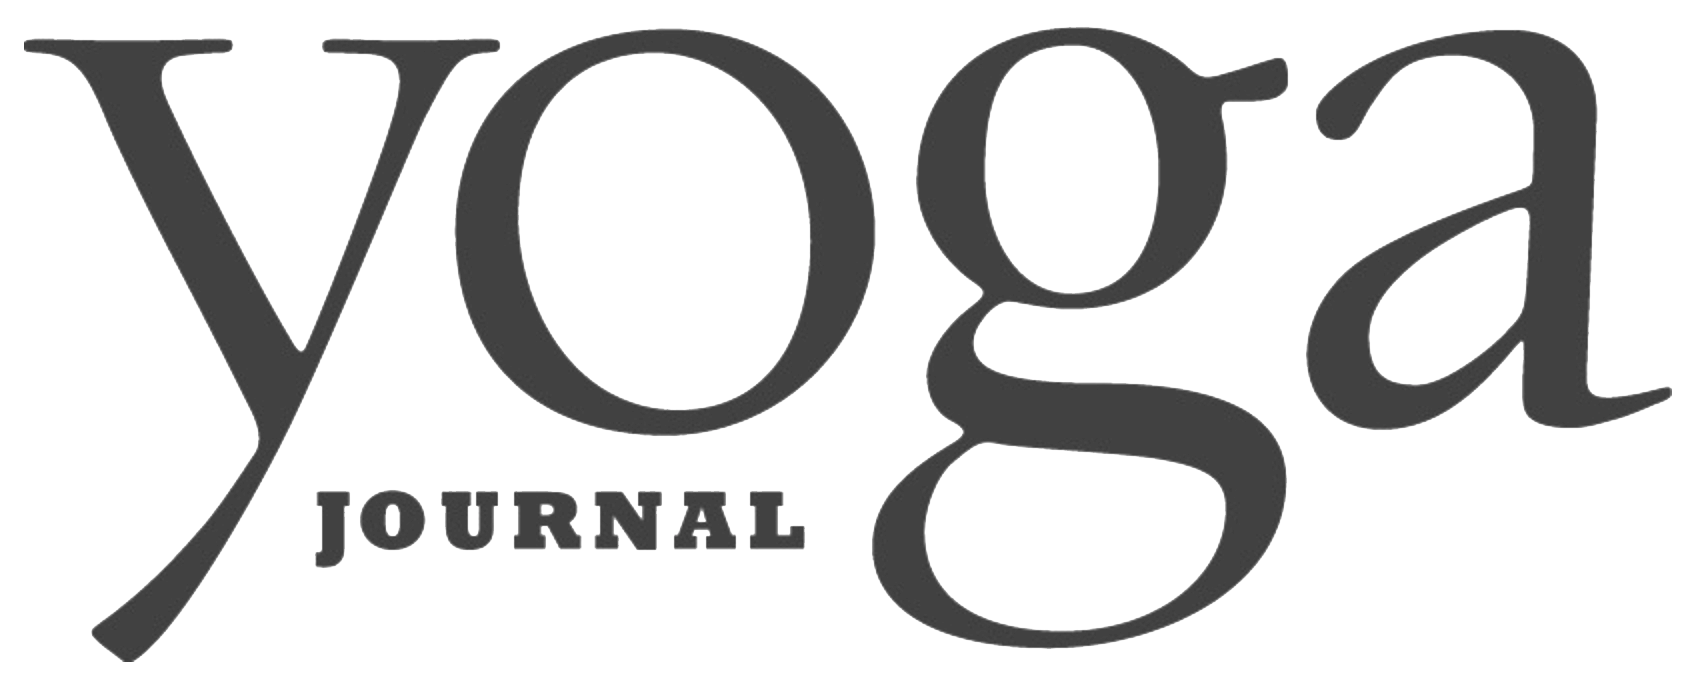 Seth-Kaufman-Press-Yoga-Journal-Logo.png